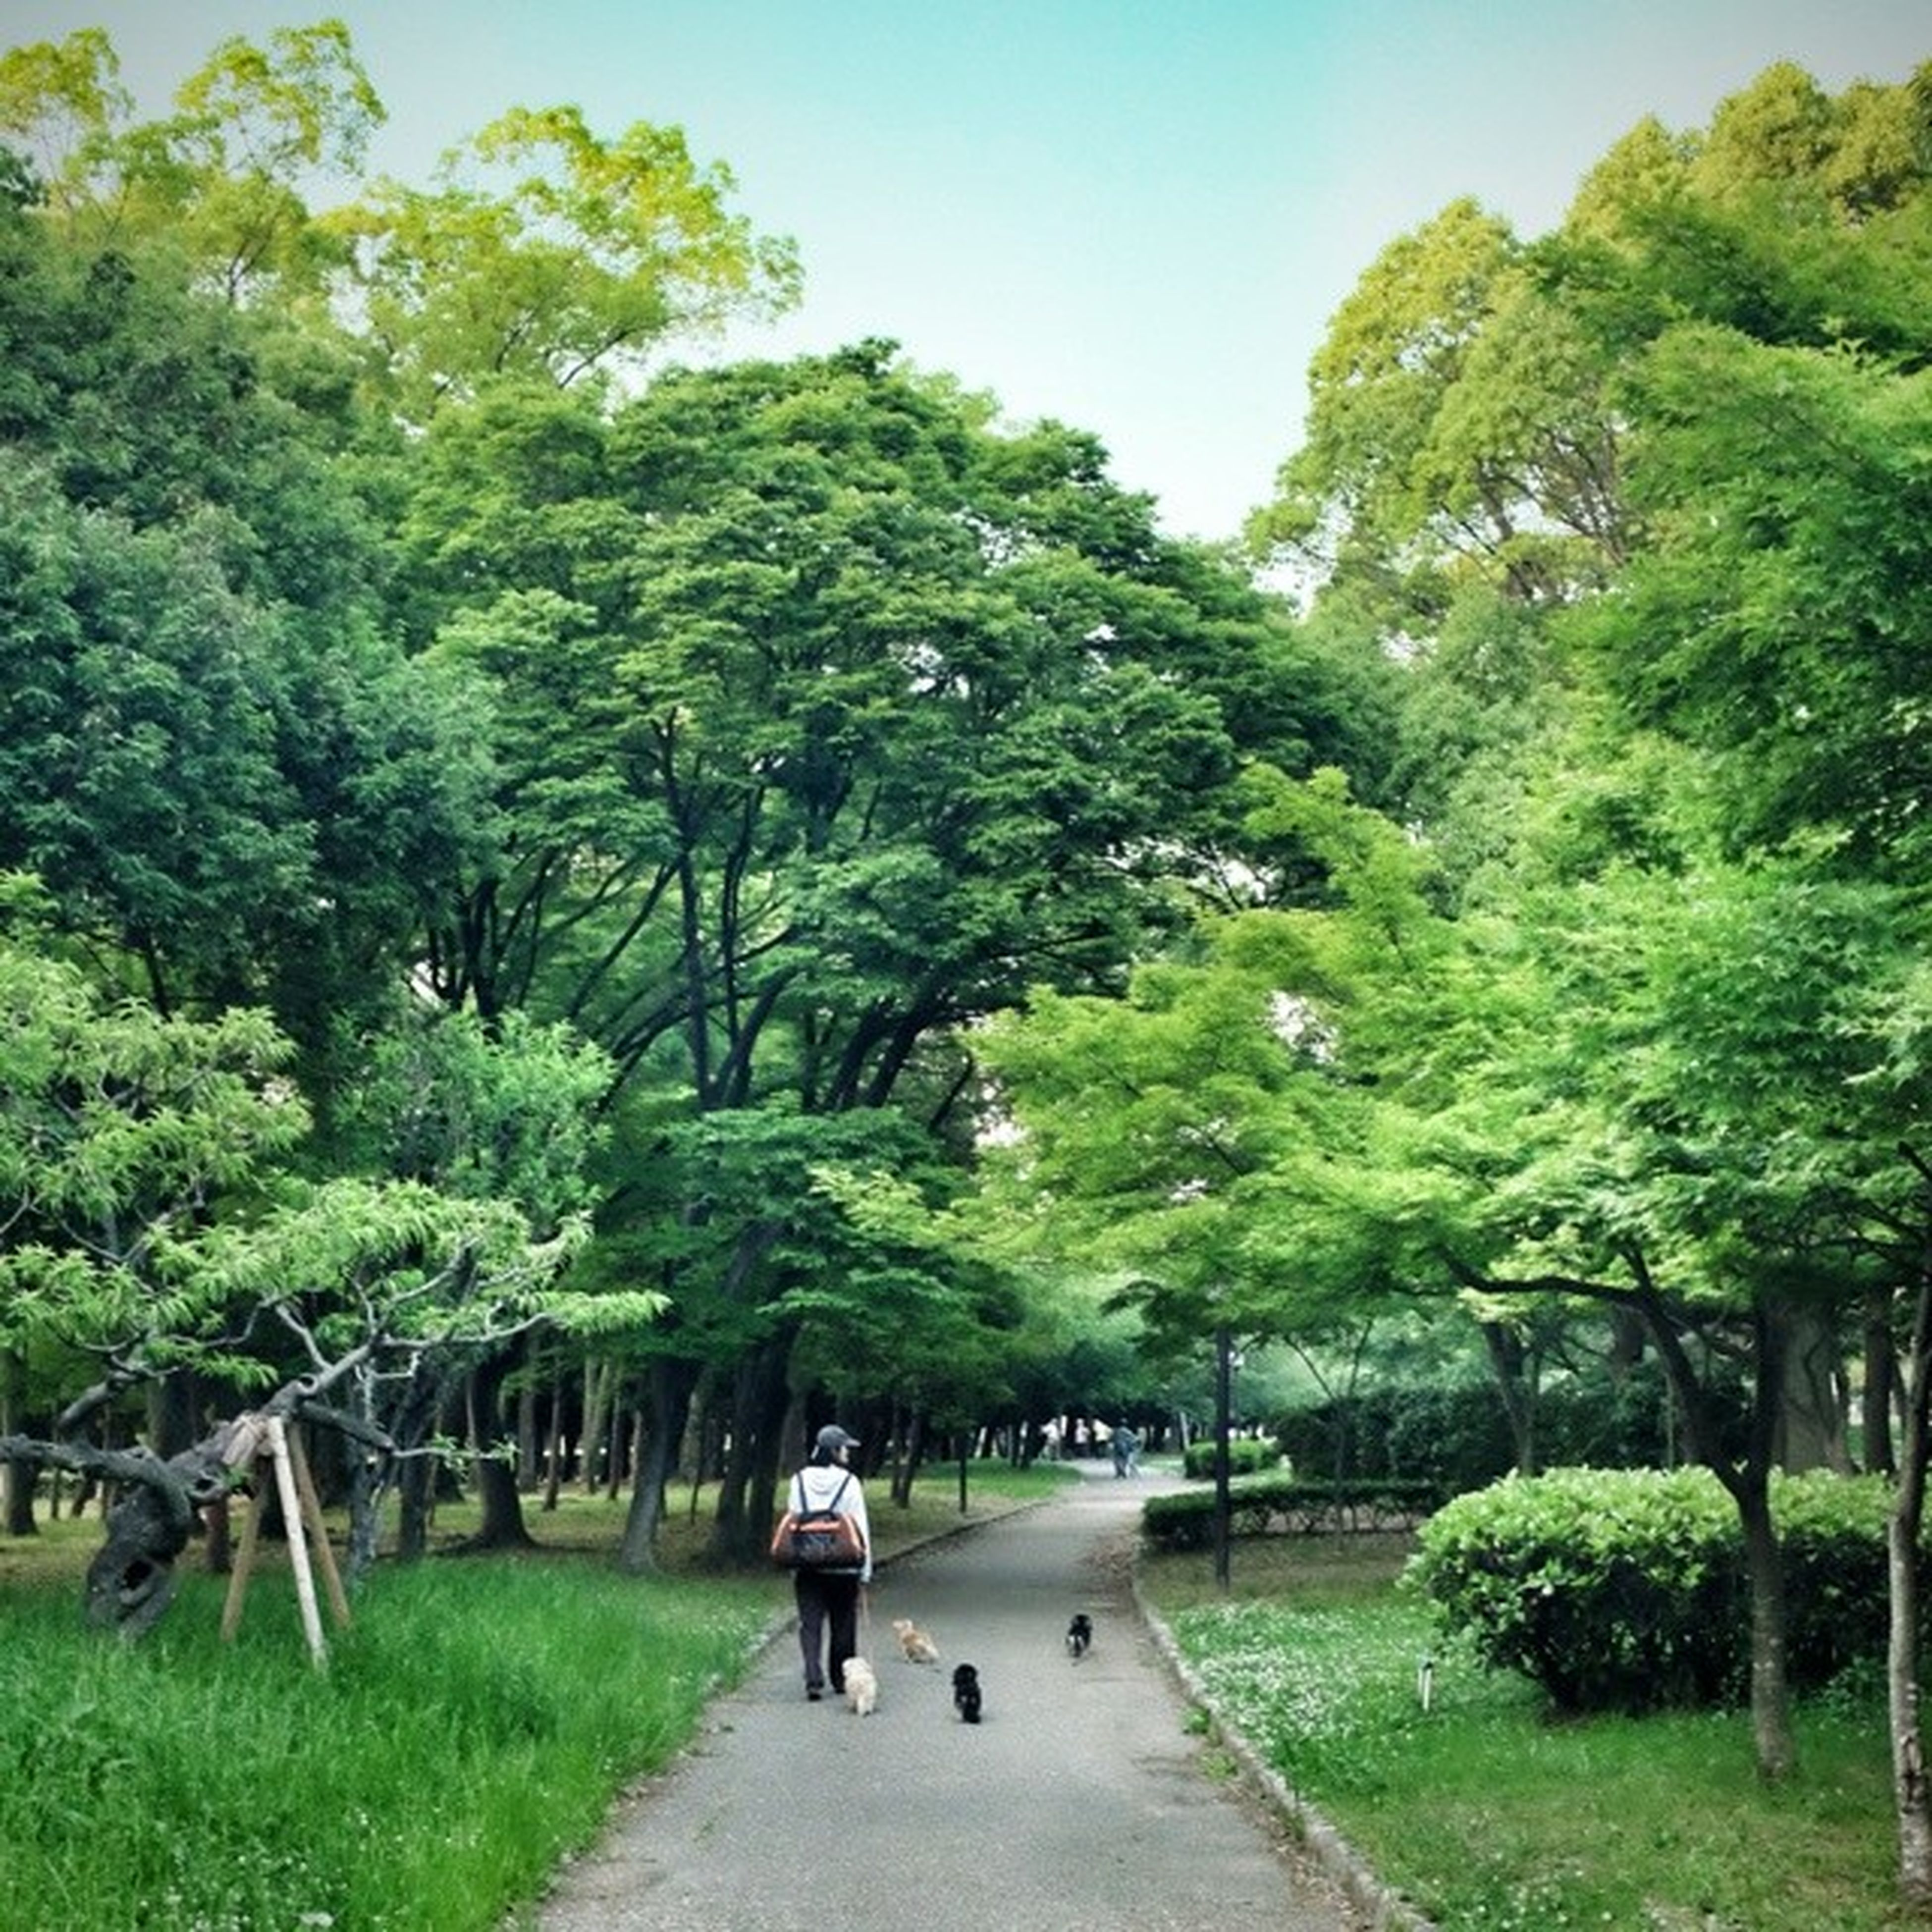 tree, men, lifestyles, rear view, walking, leisure activity, the way forward, full length, togetherness, person, green color, footpath, bonding, park - man made space, growth, grass, nature